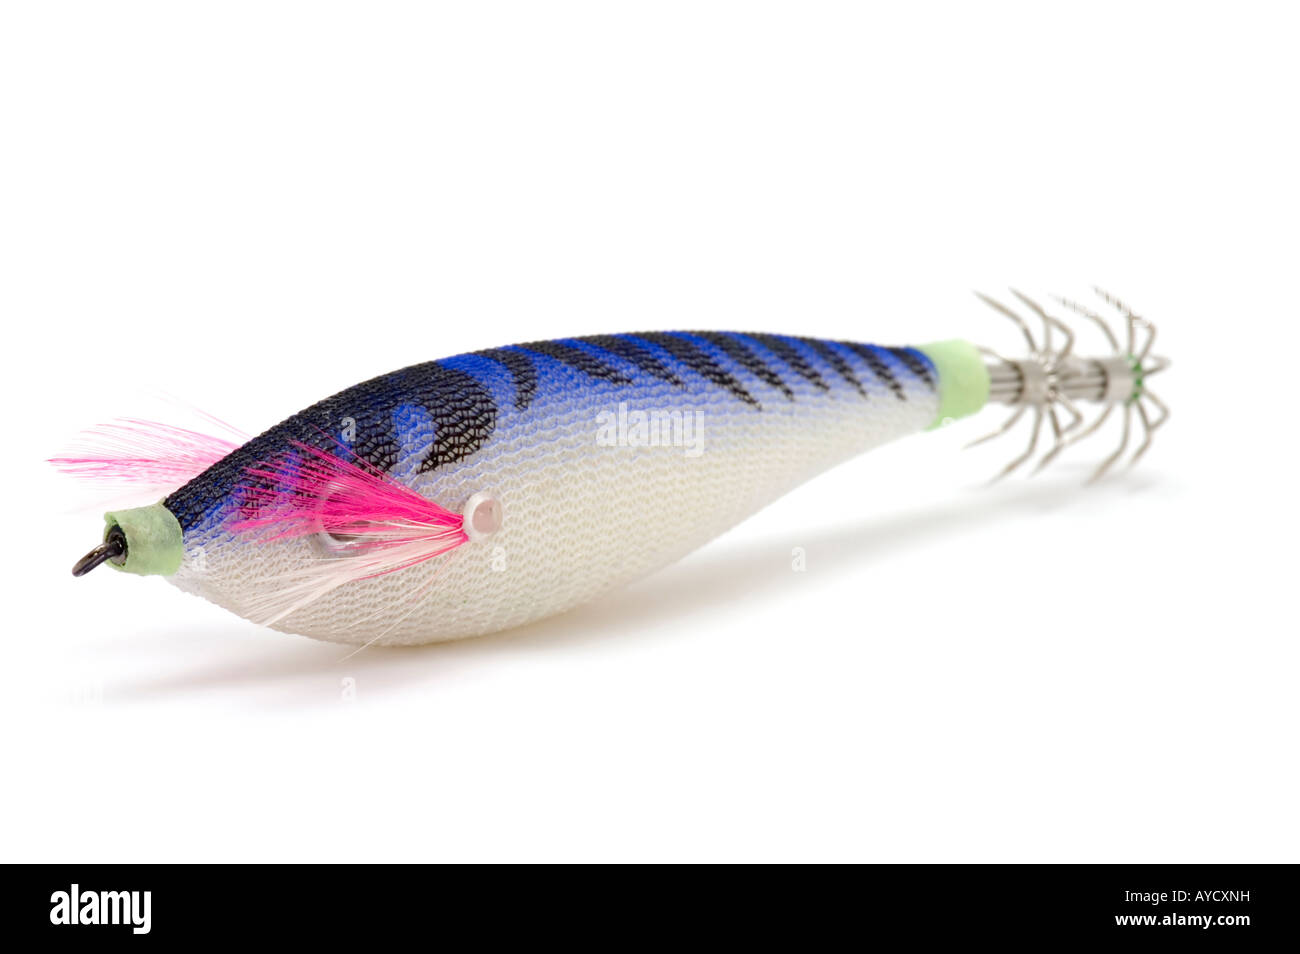 object on white ledger bait - Stock Image